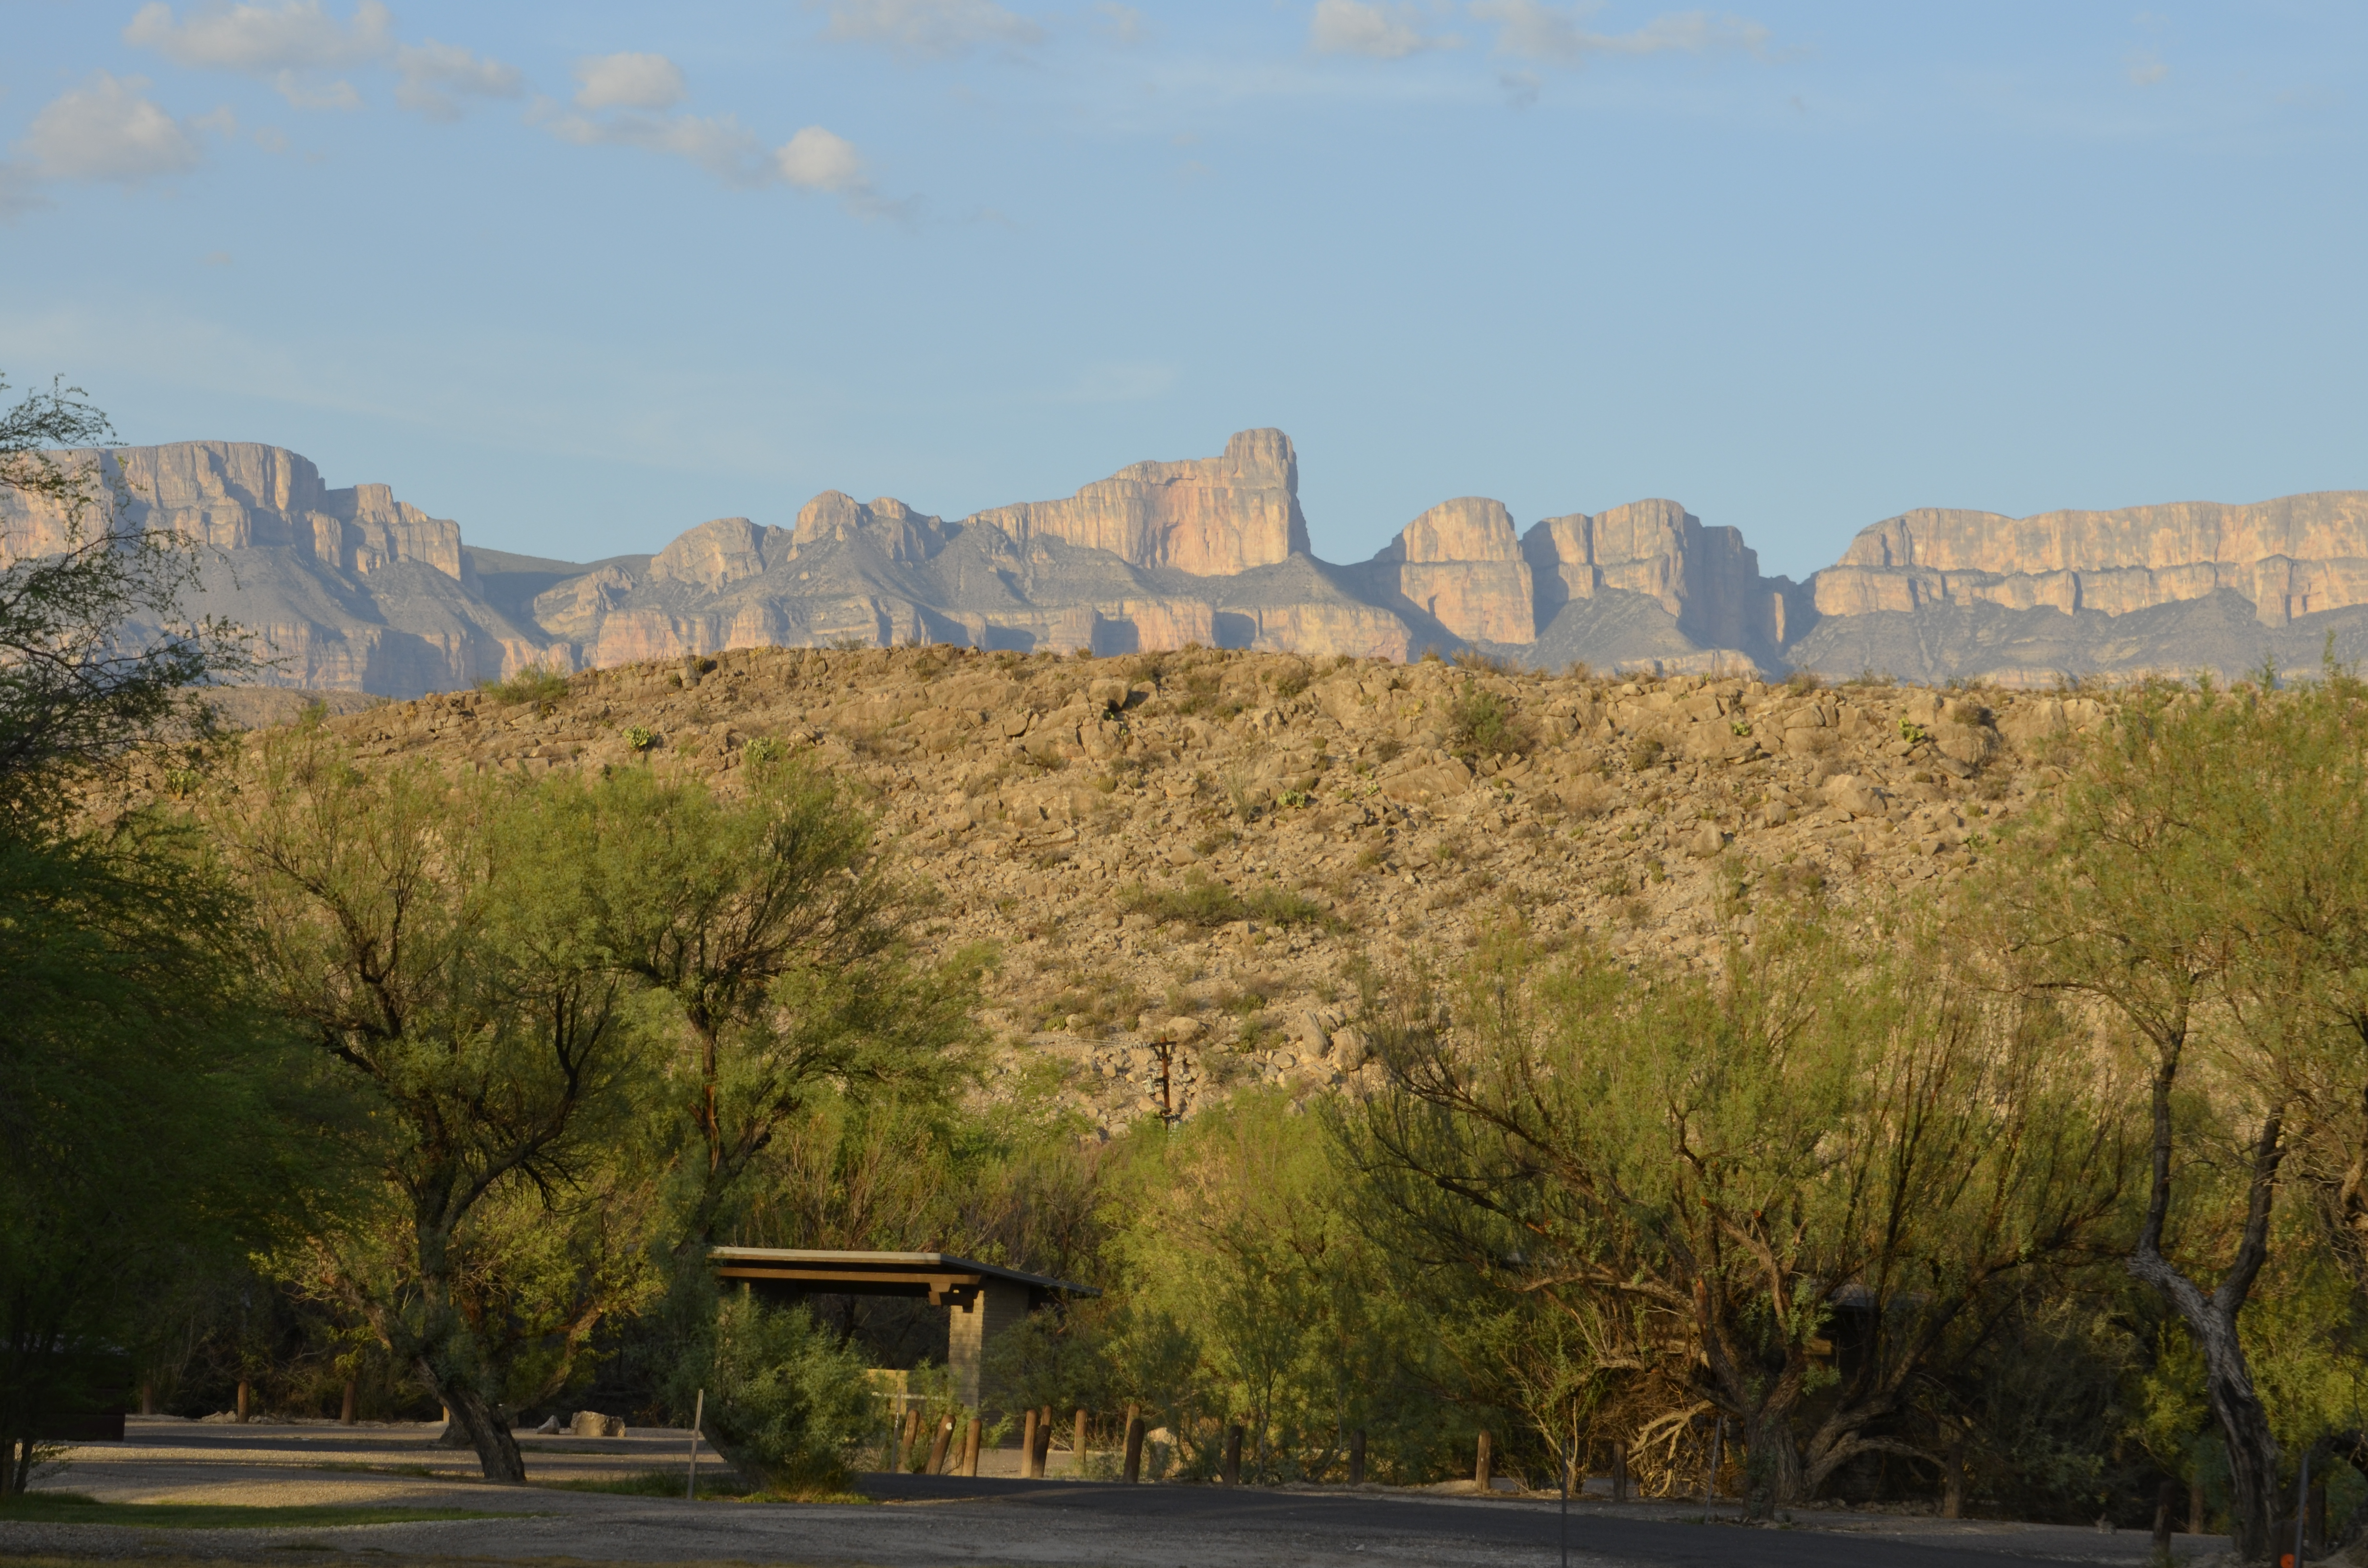 A view of the Sierra del Carmen from the RGV campground.